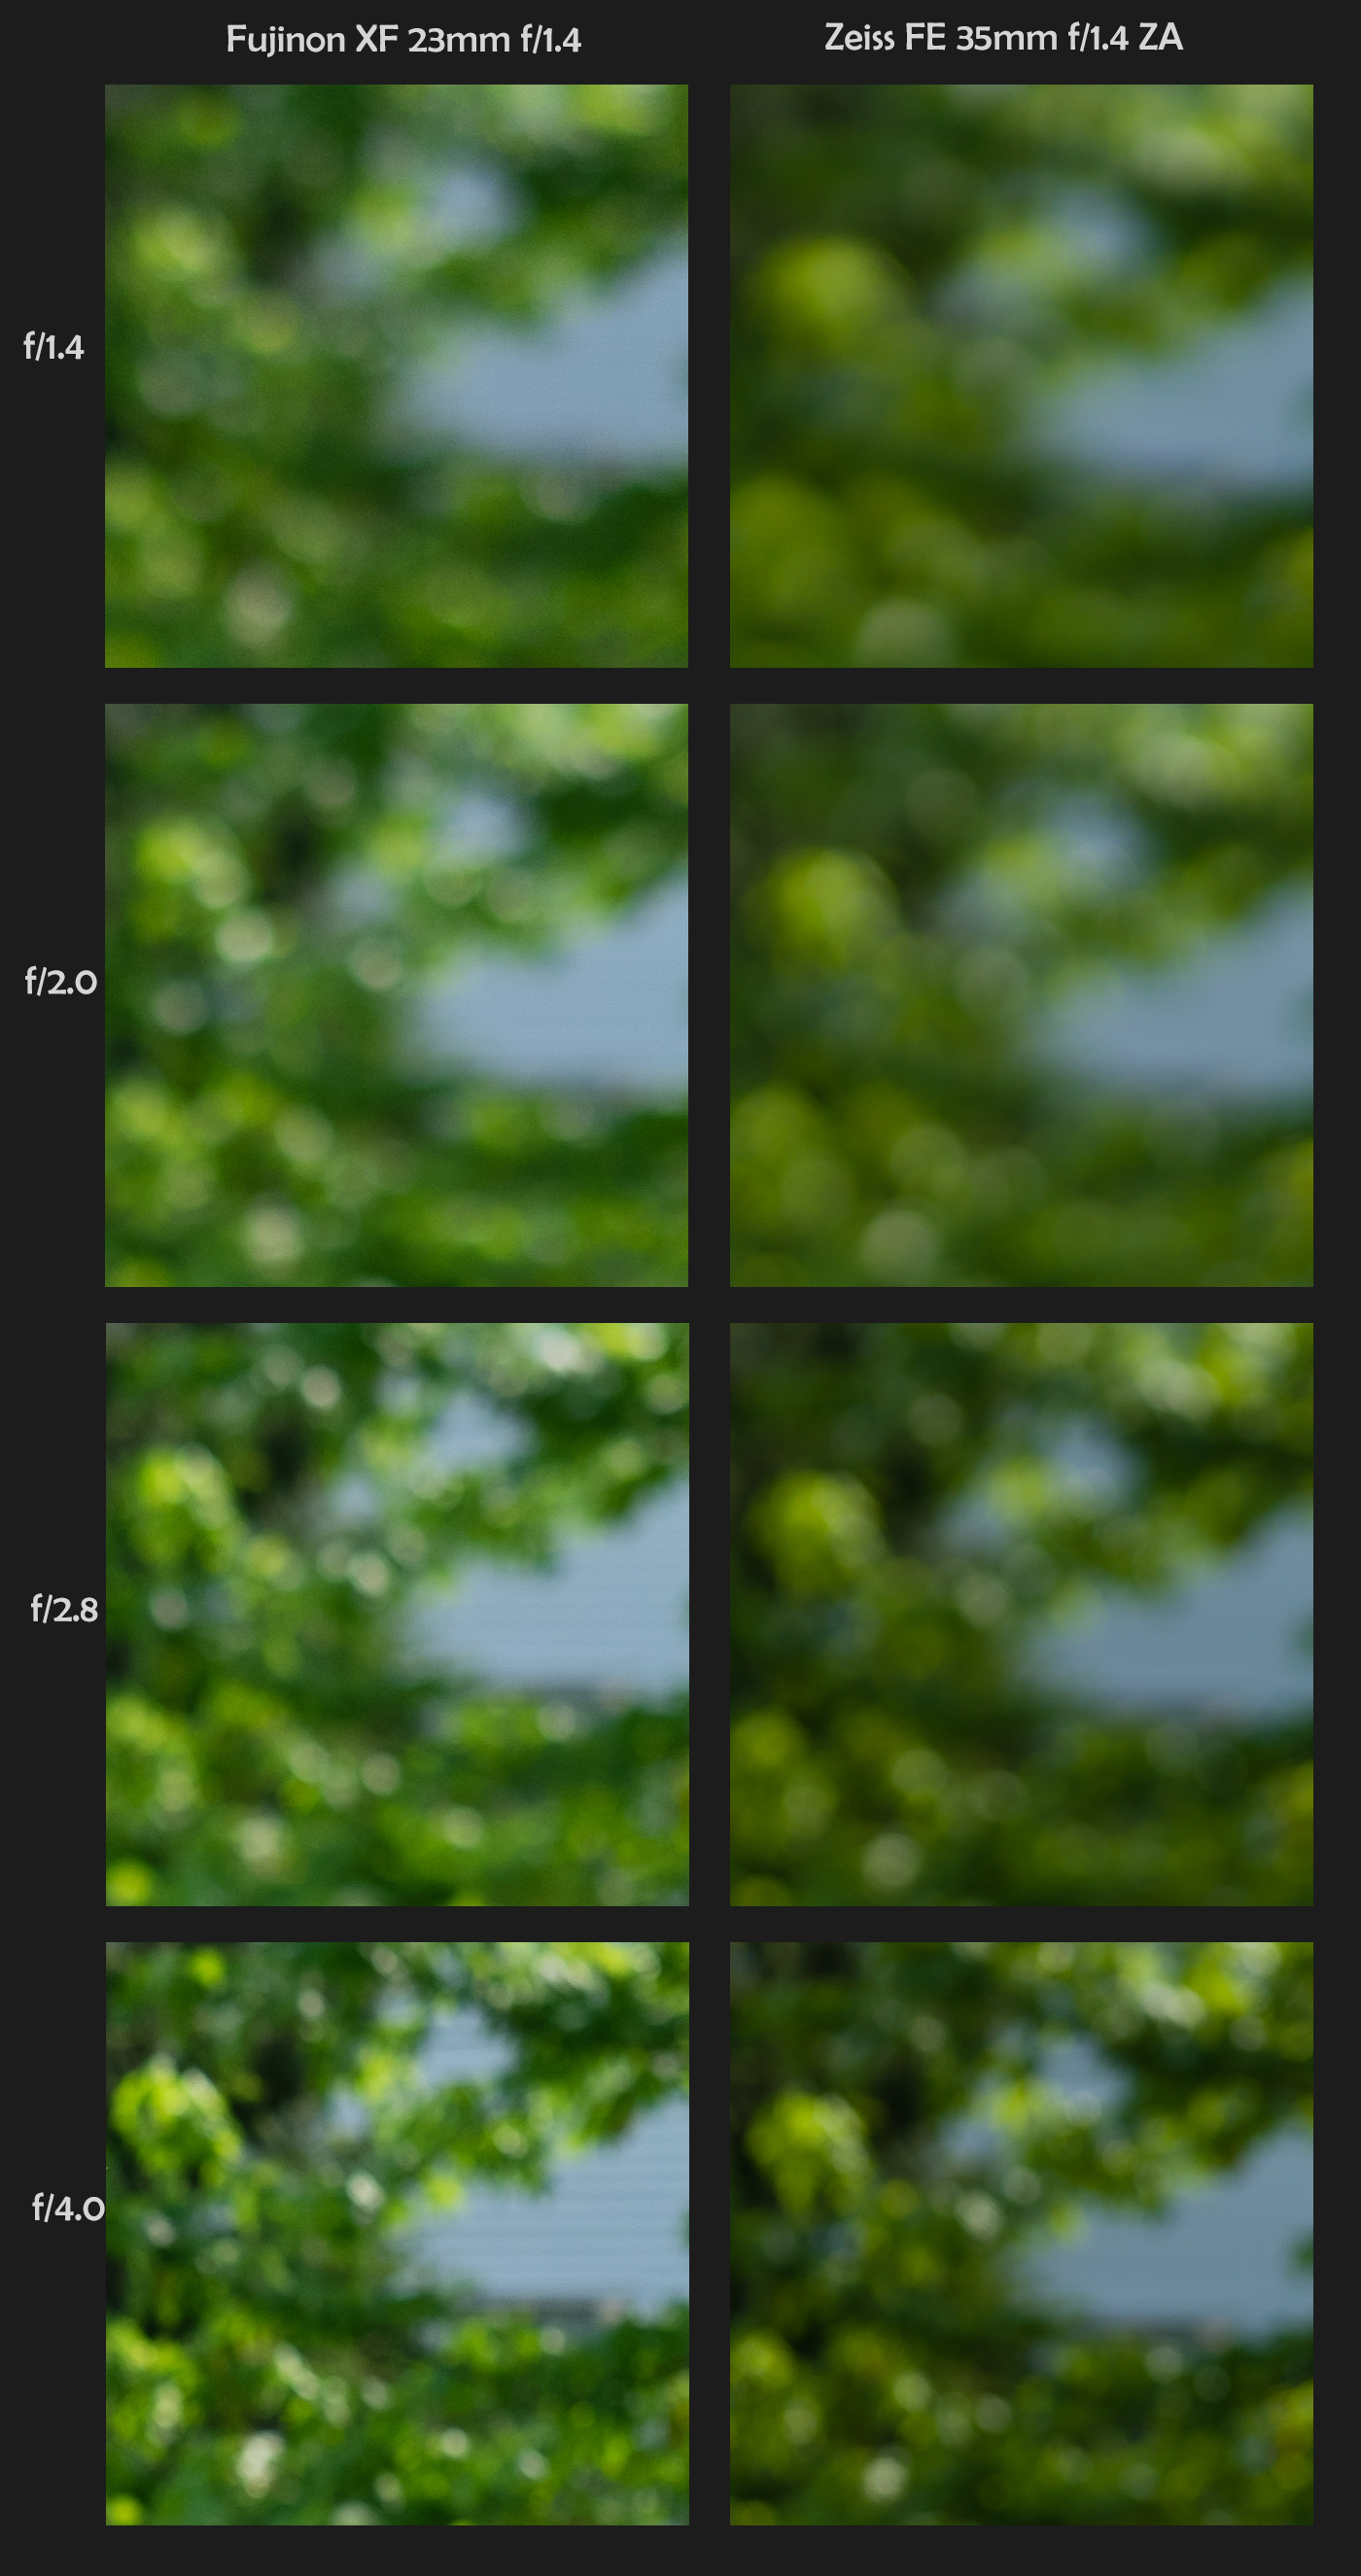 100% Crops - Bokeh (Sony resized to 16MP) - Click to view full size